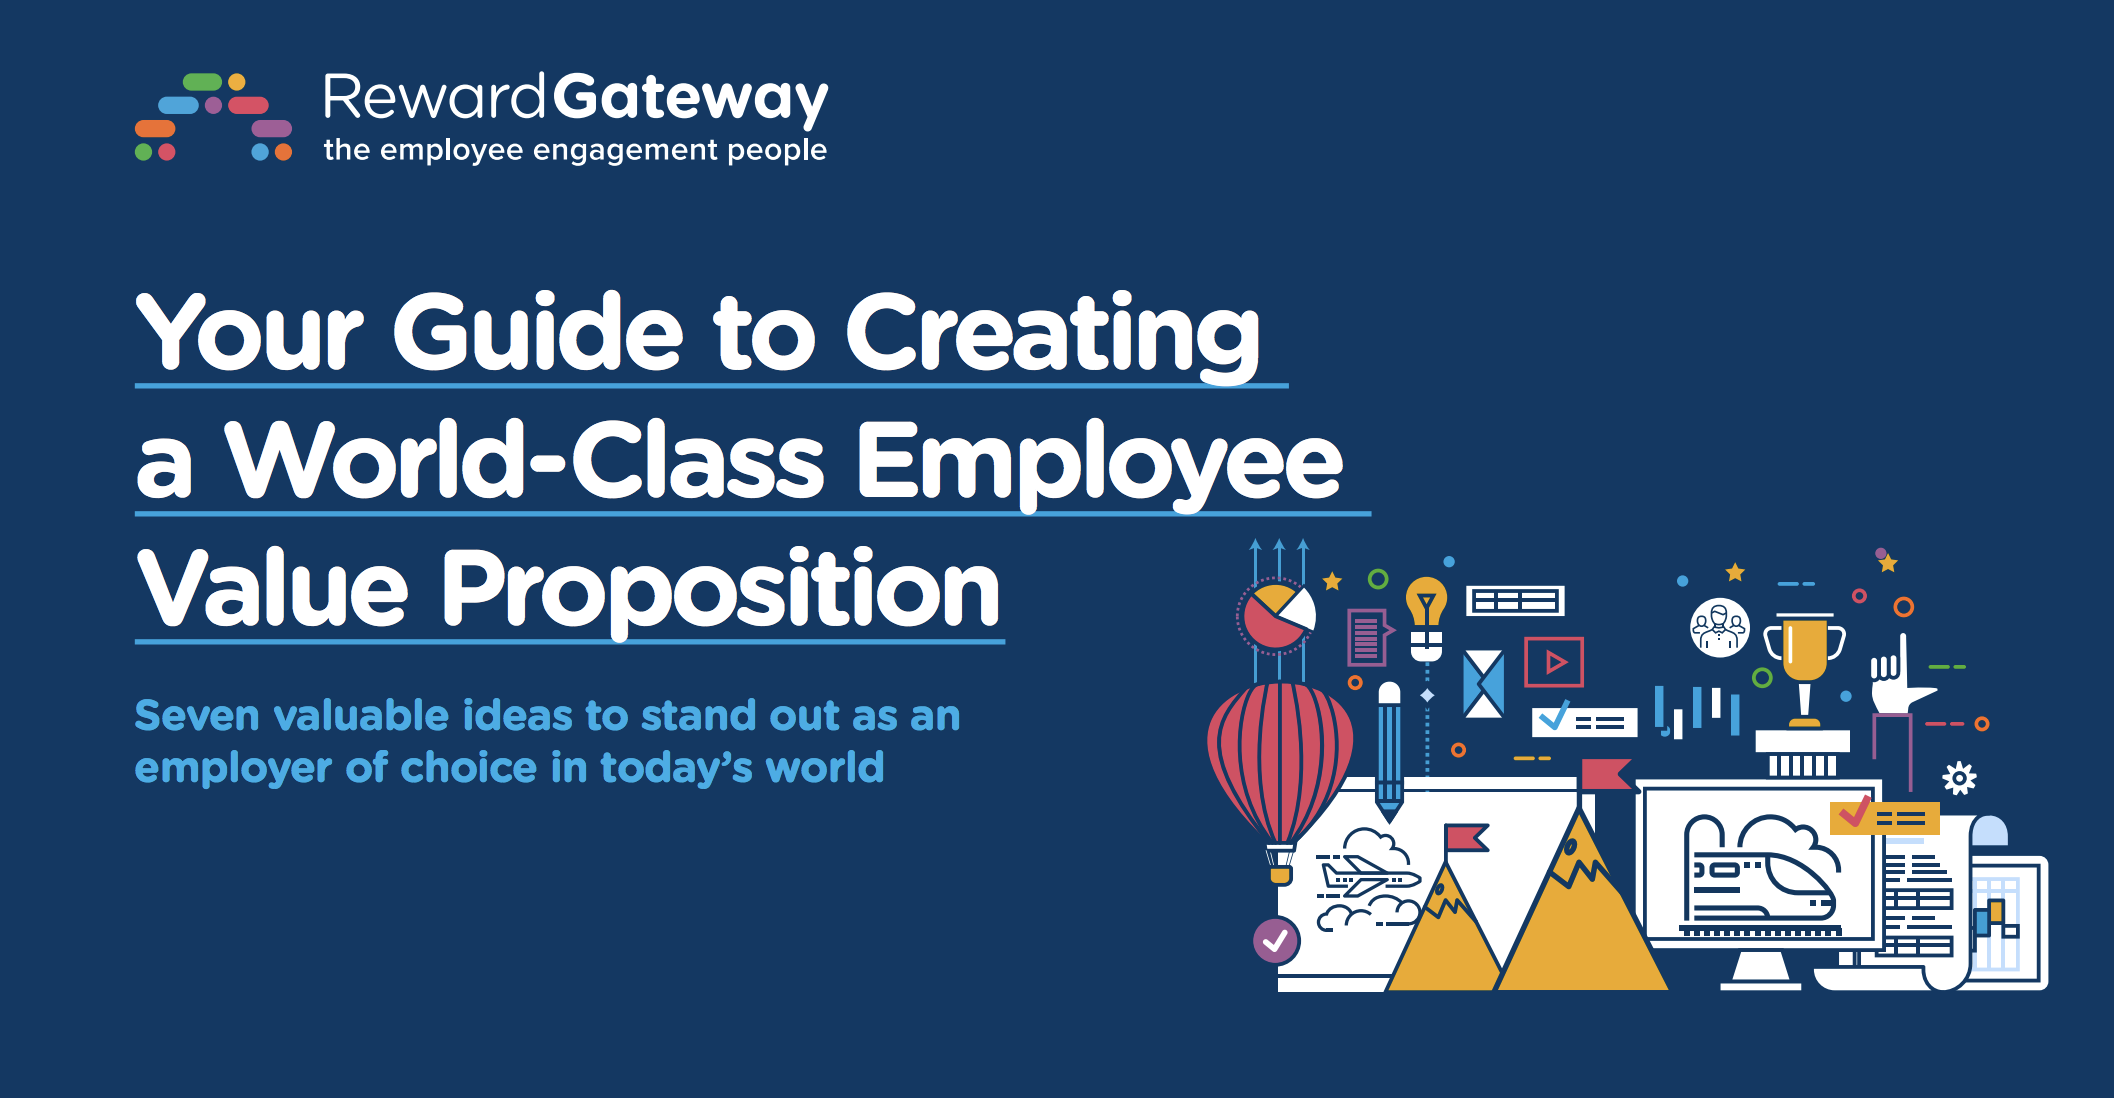 How to improve your employee value proposition